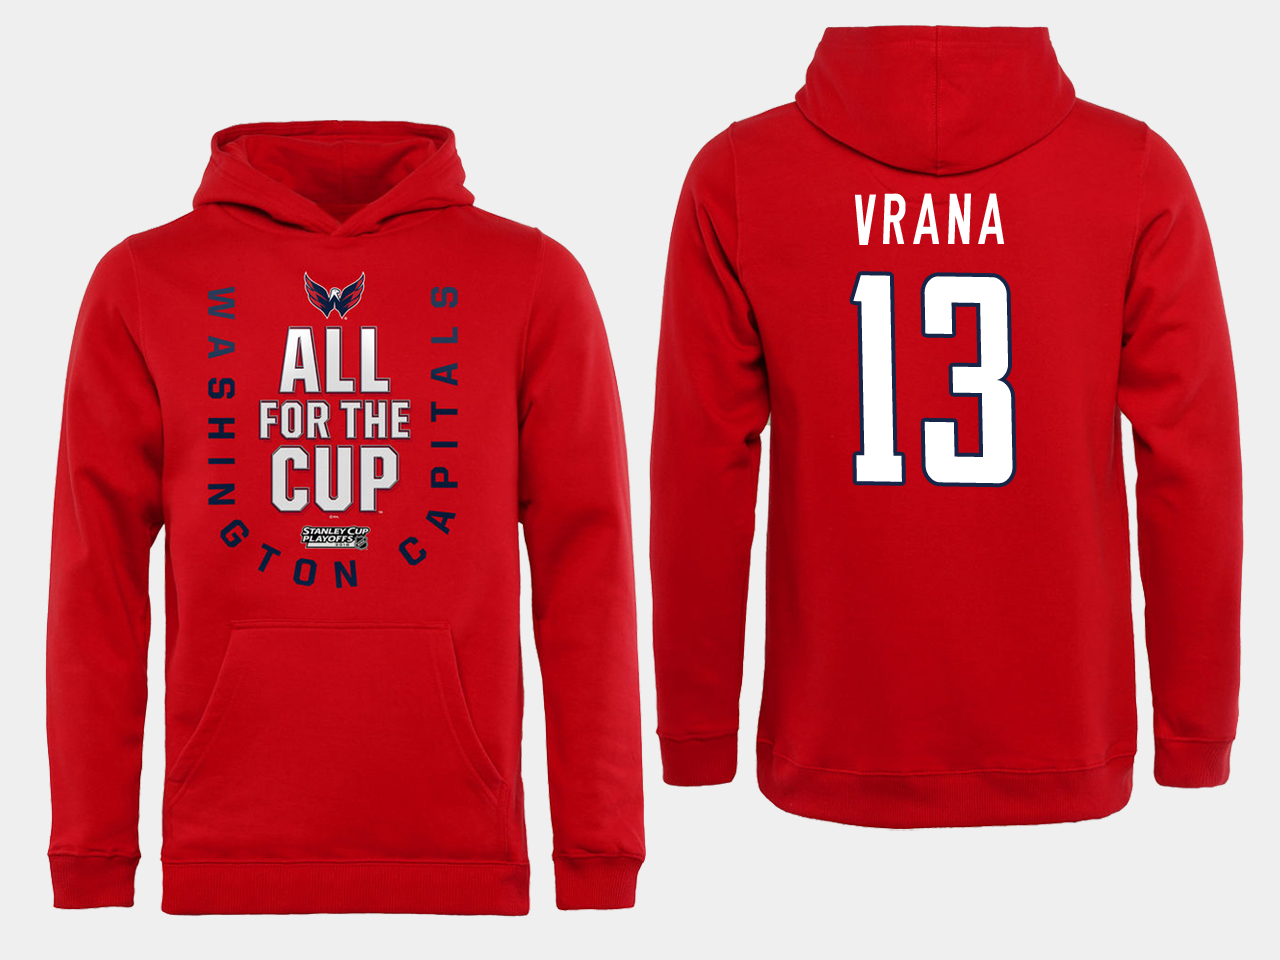 Men NHL Washington Capitals 13 Vrana Red All for the Cup Hoodie